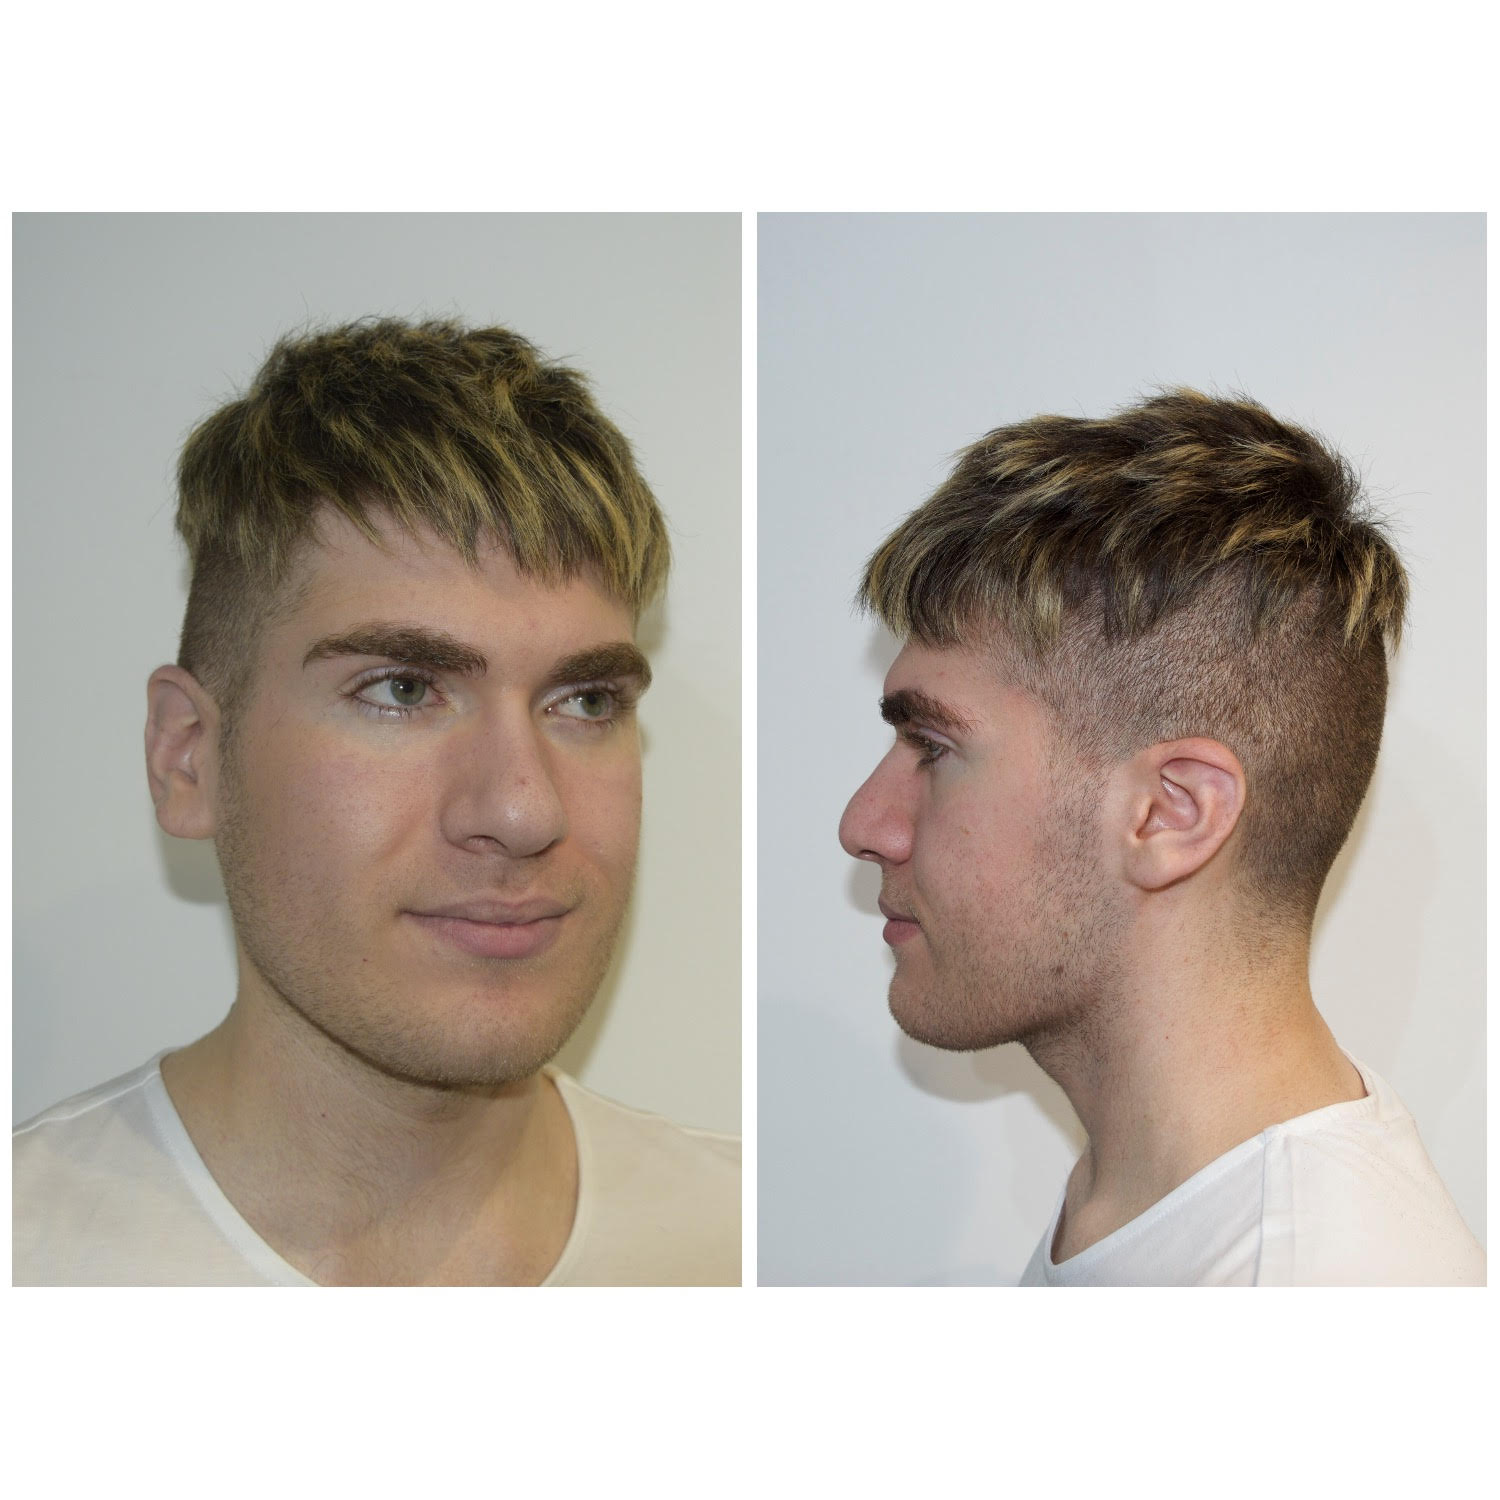 Edgy undercut - express yourself!Wear it down or up, its up to you.Add some color to create more texture and uniqueness.